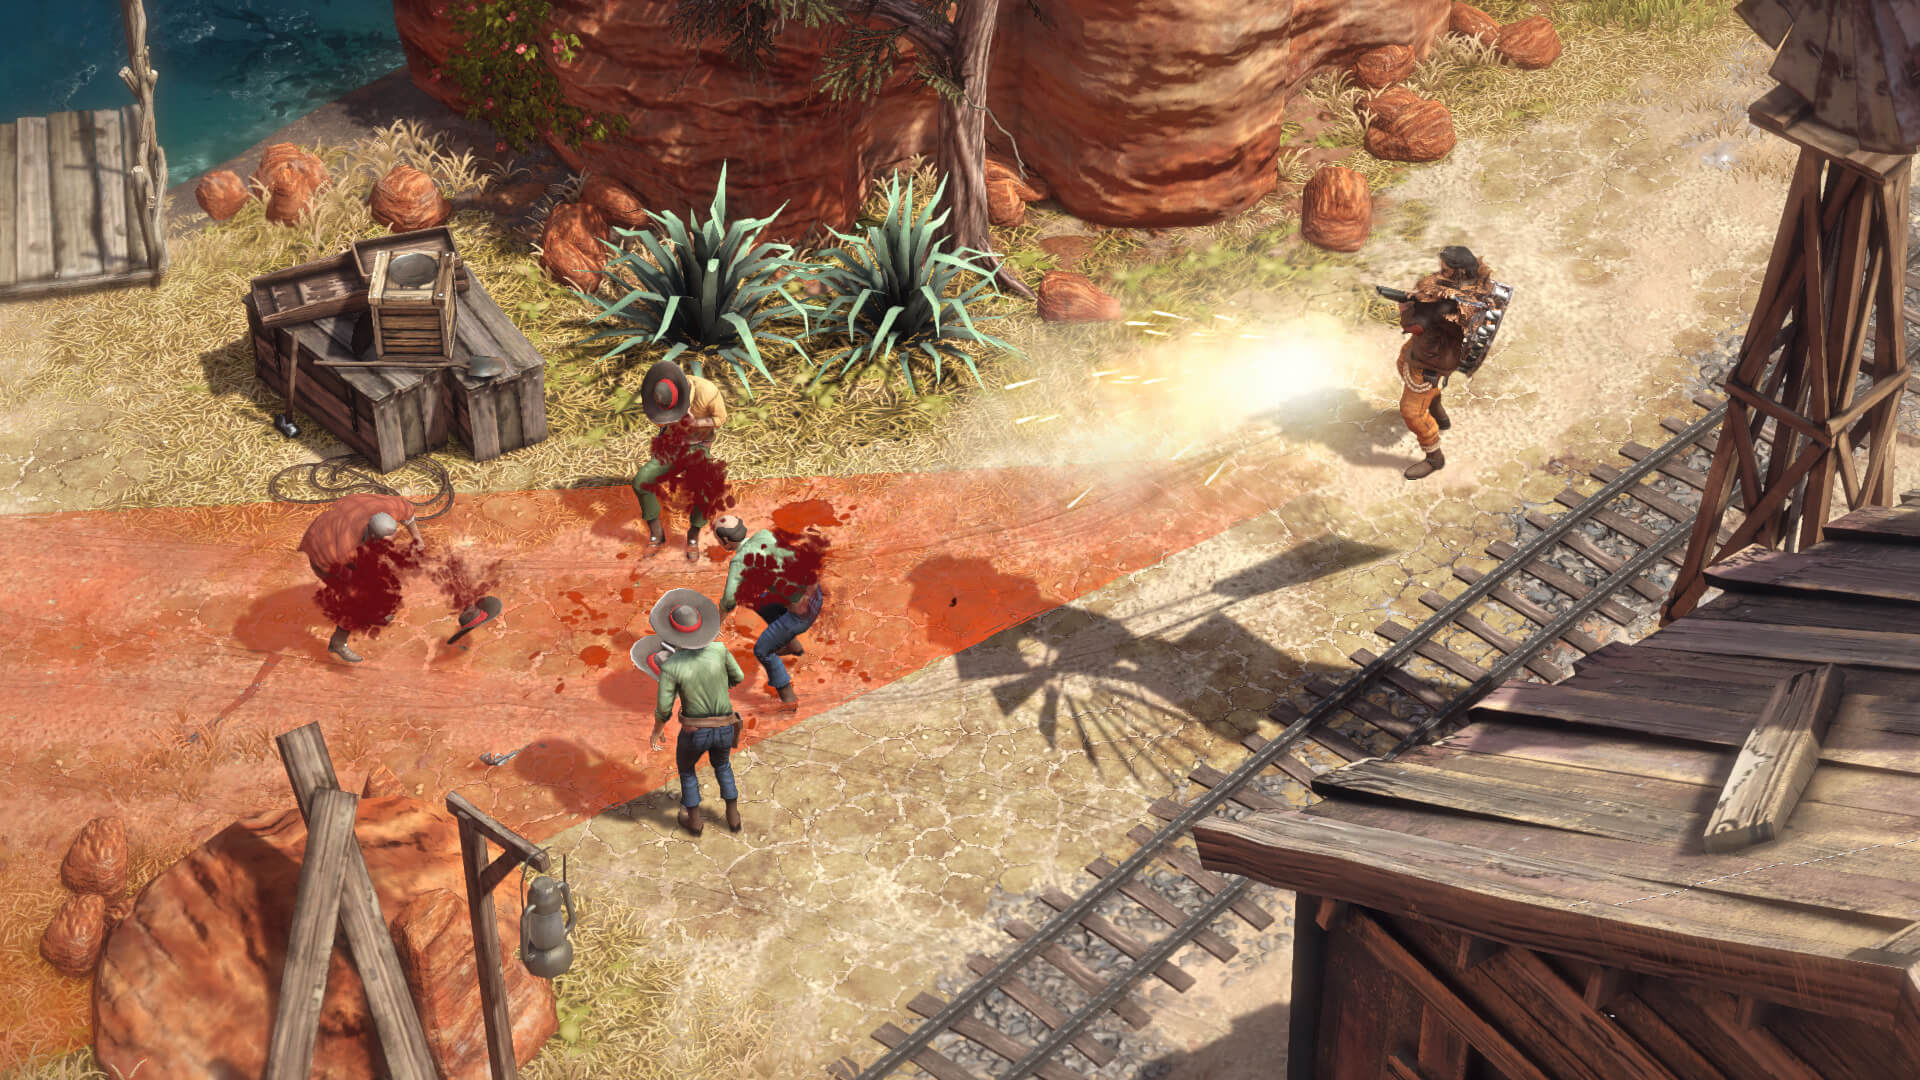 Desperados 3 Desperados Iii Is A Story Driven Hardcore Tactical Stealth Game Set In A Ruthless Wild West Scenario